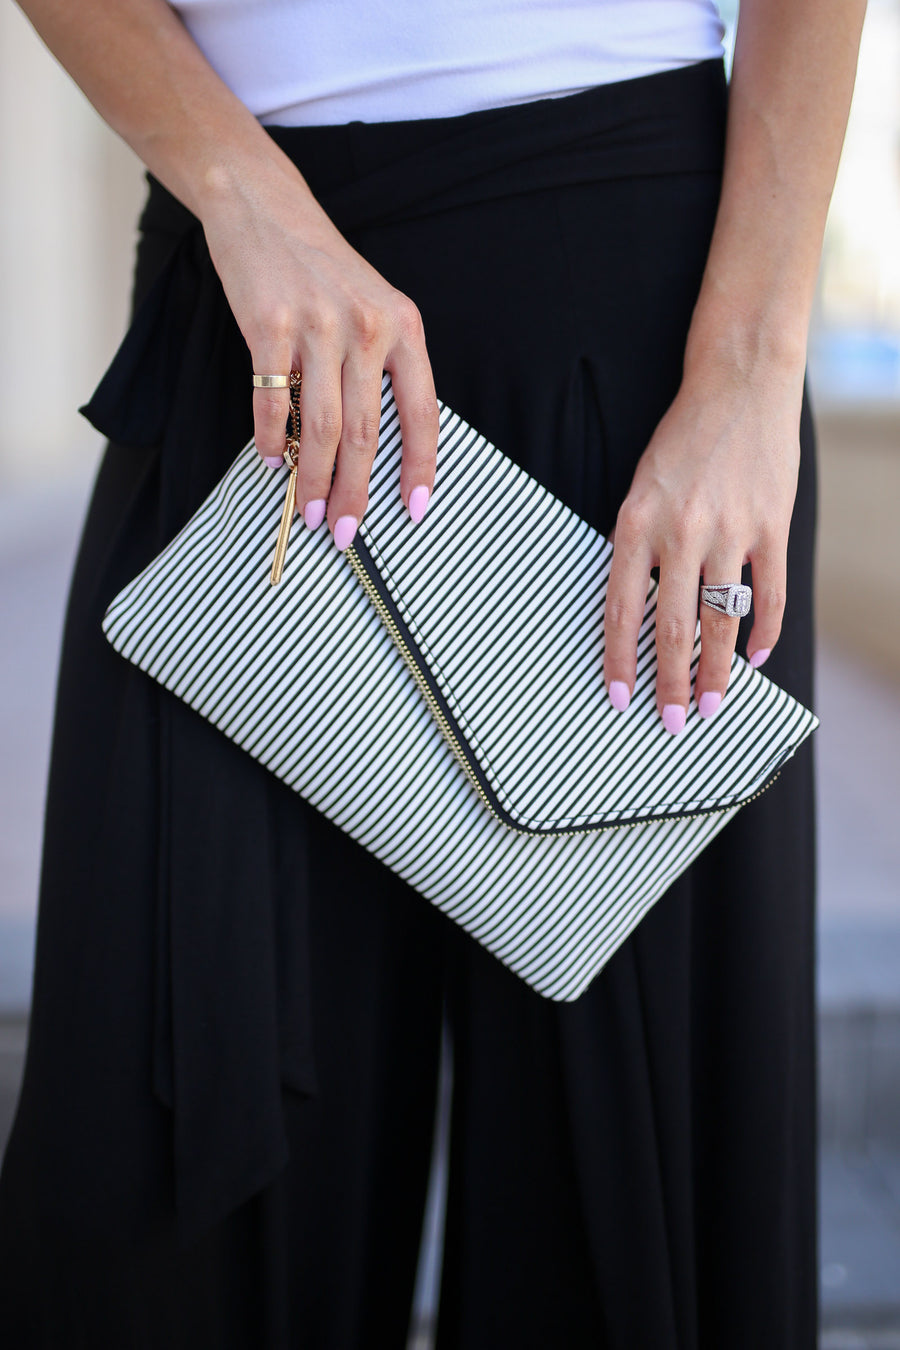 Sydney Clutch - Black & White stripe envelope clutch purse, front, Closet Candy Boutique